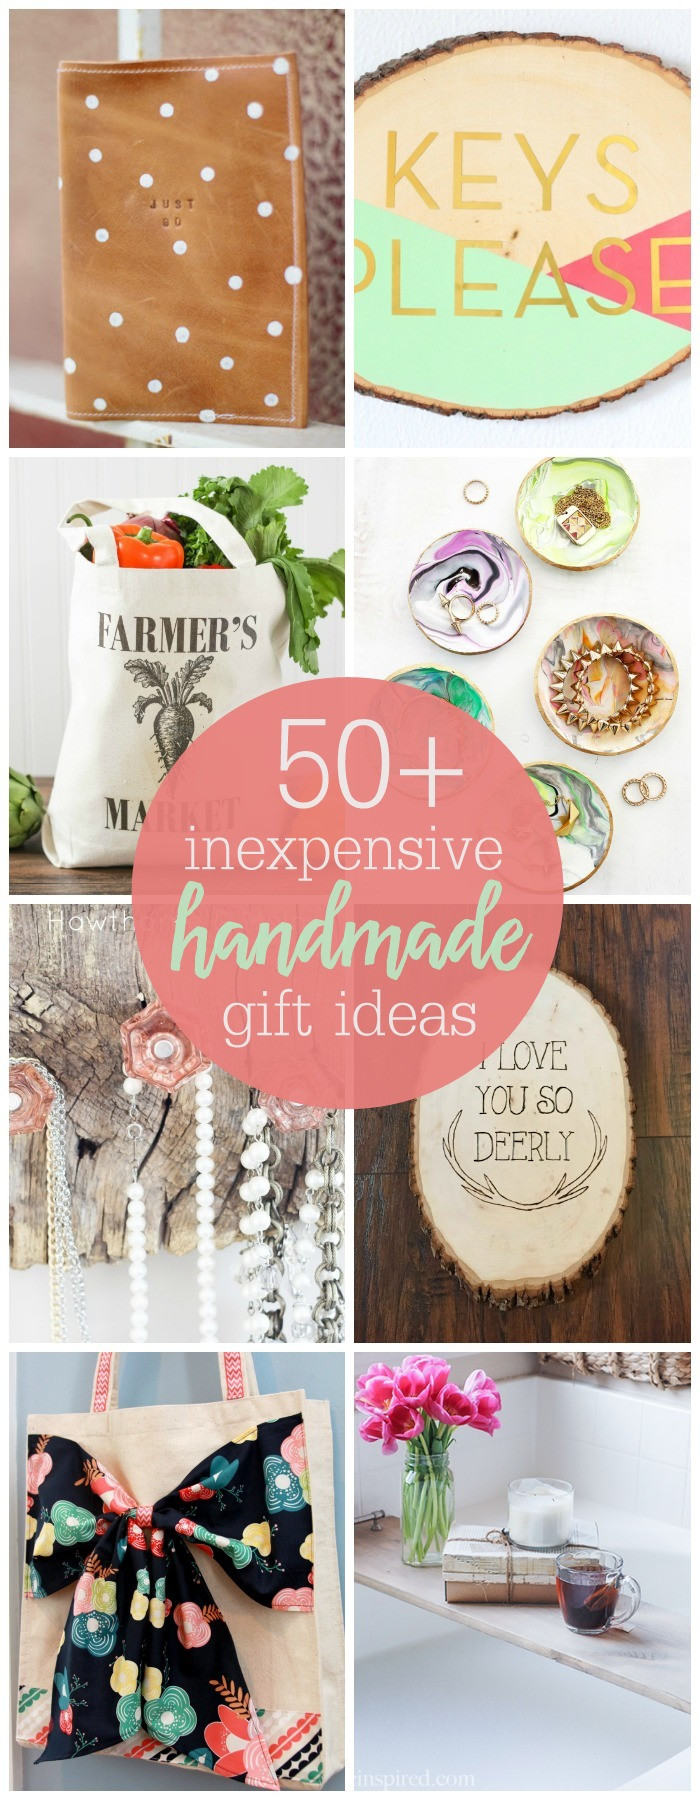 Best ideas about DIY Christmas Gifts For Best Friend . Save or Pin Inexpensive Handmade Gift Ideas Now.